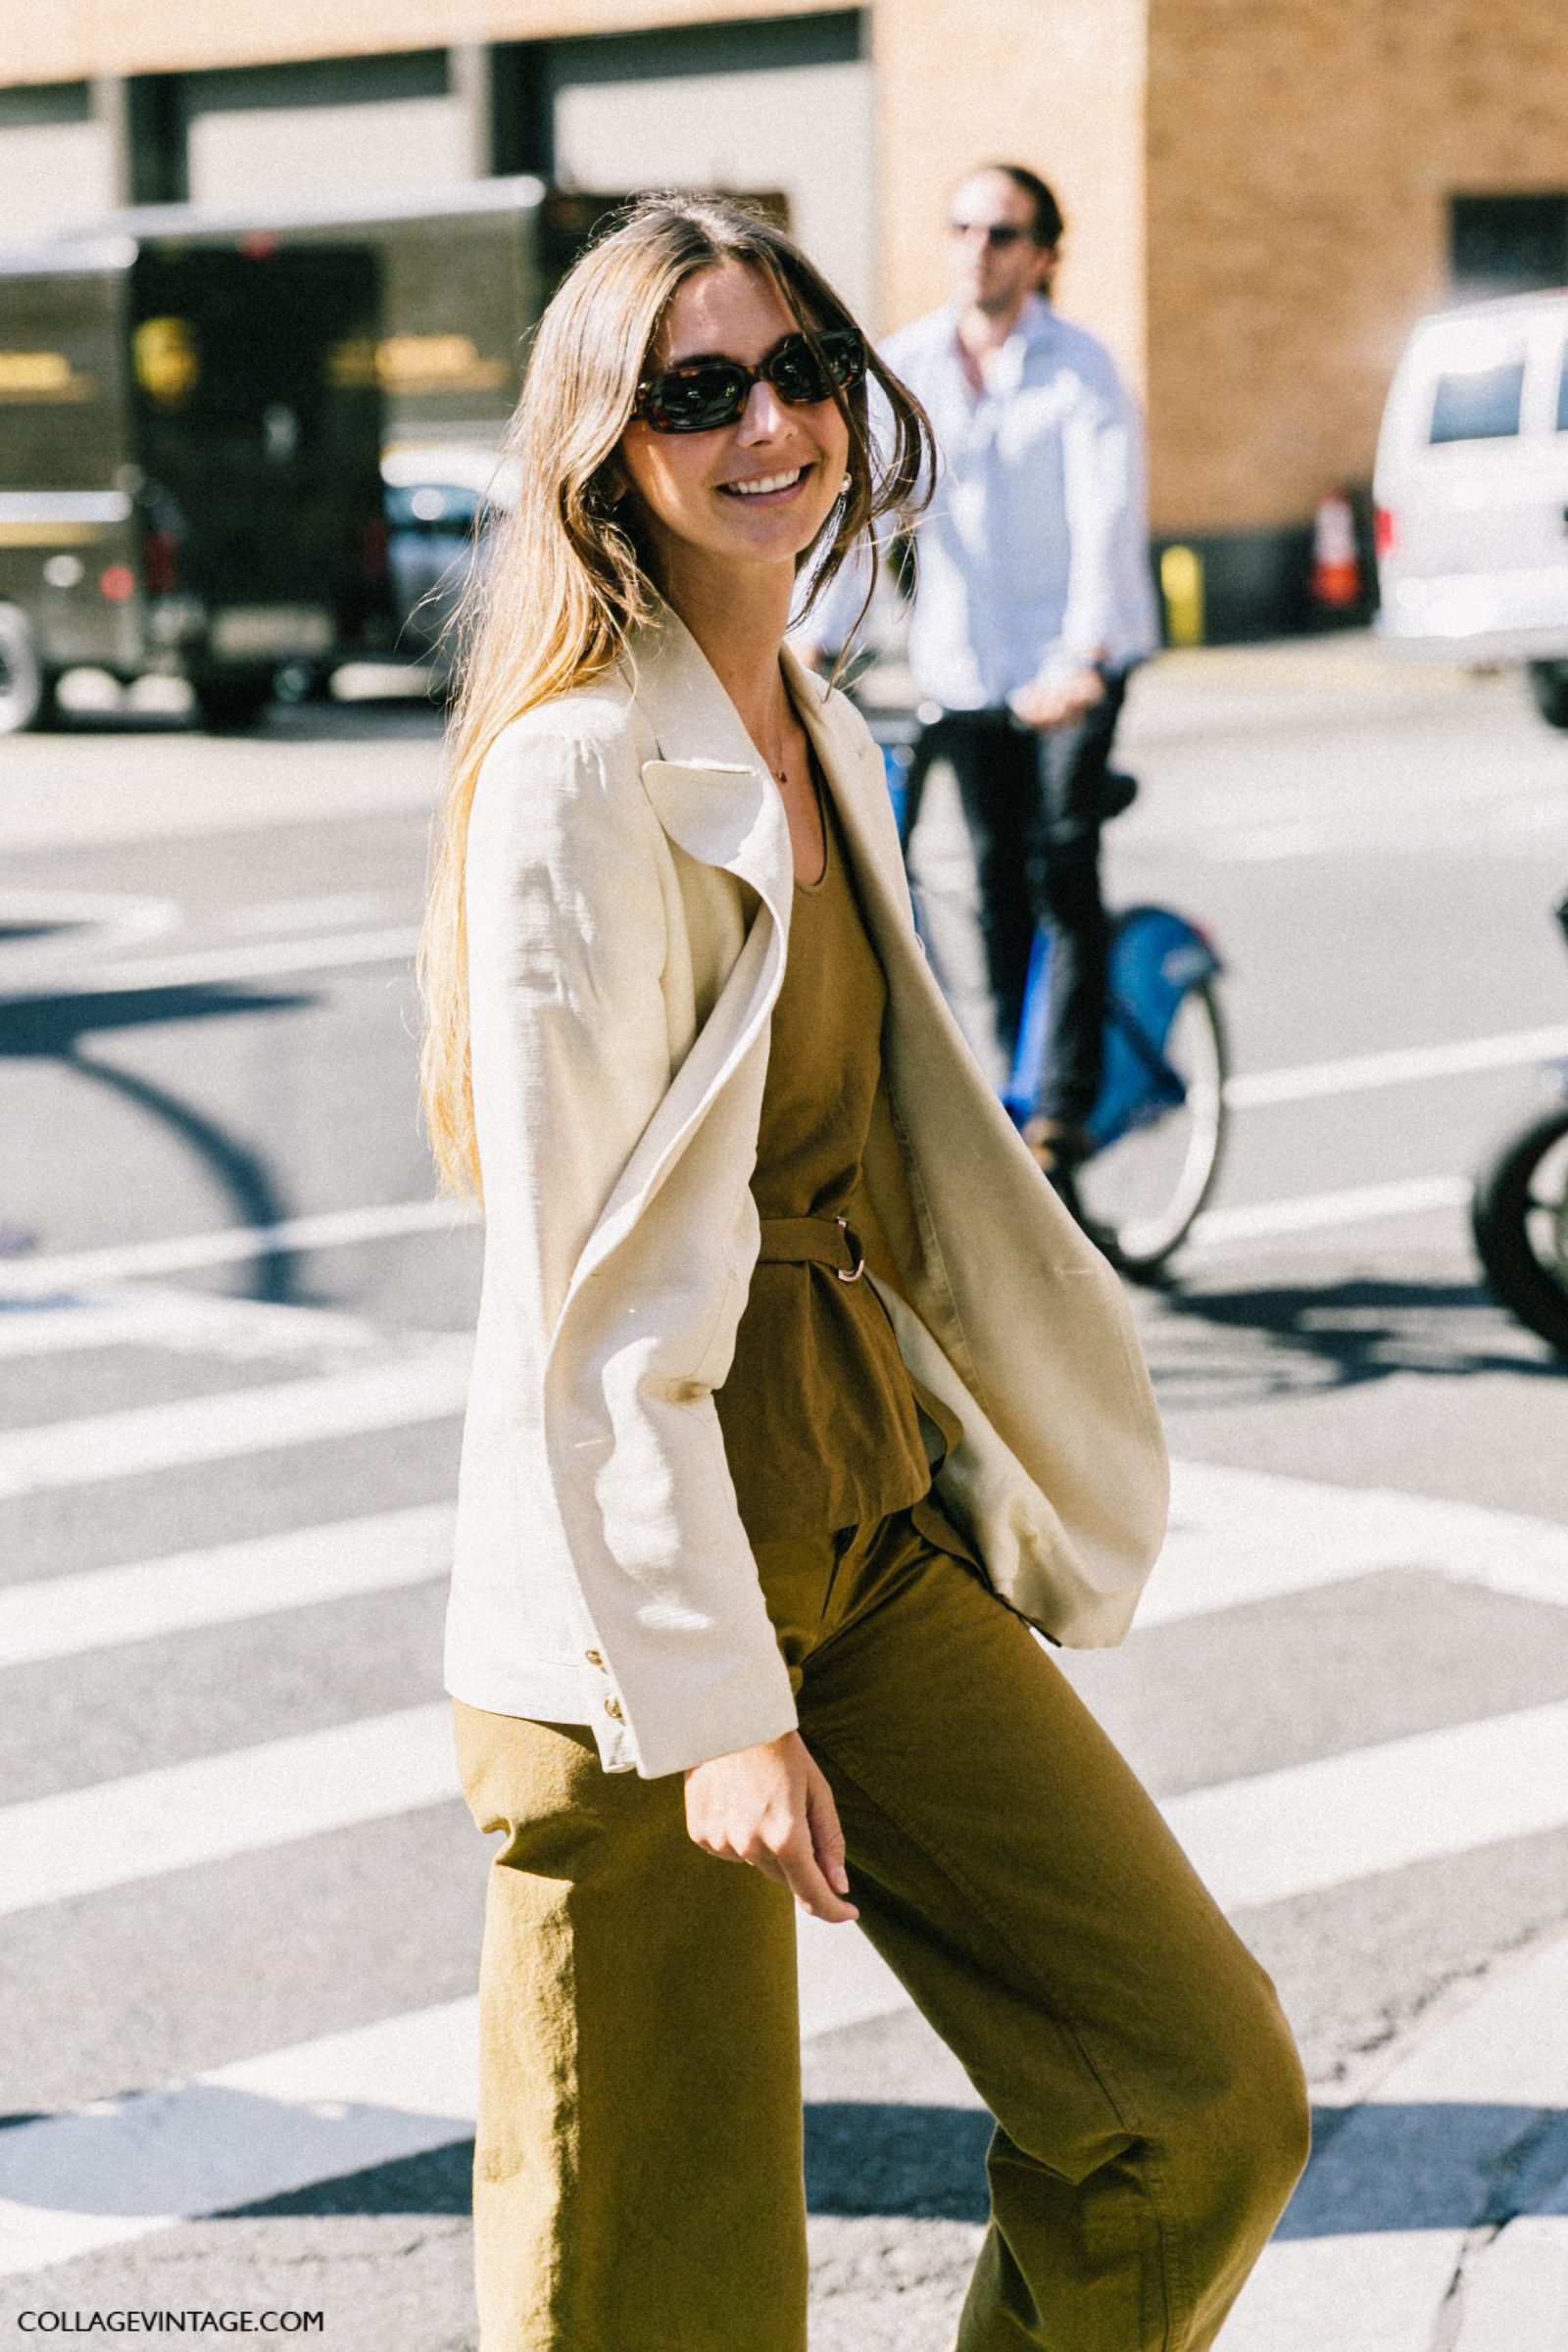 nyfw-new_york_fashion_week_ss17-street_style-outfits-collage_vintage-vintage-phillip_lim-the-row-proenza_schouler-rossie_aussolin-375